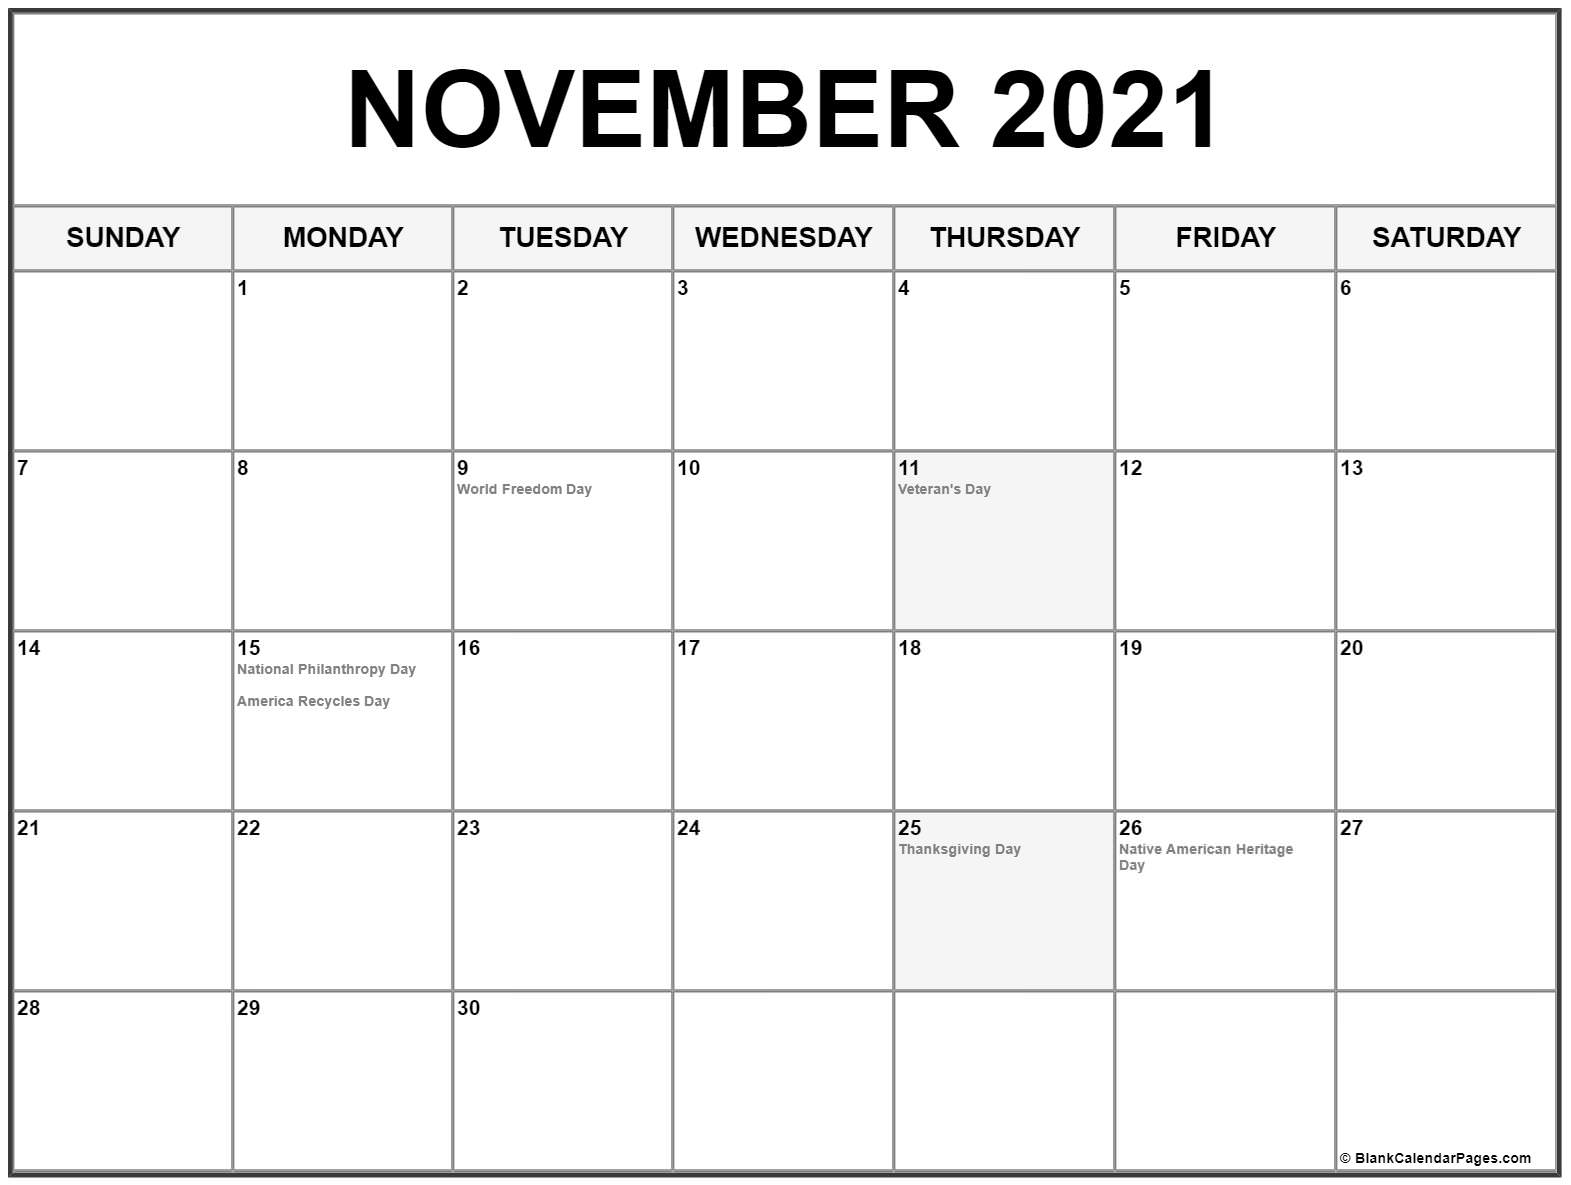 Calendar November 2020 Collection of November 2020 calendars with holidays